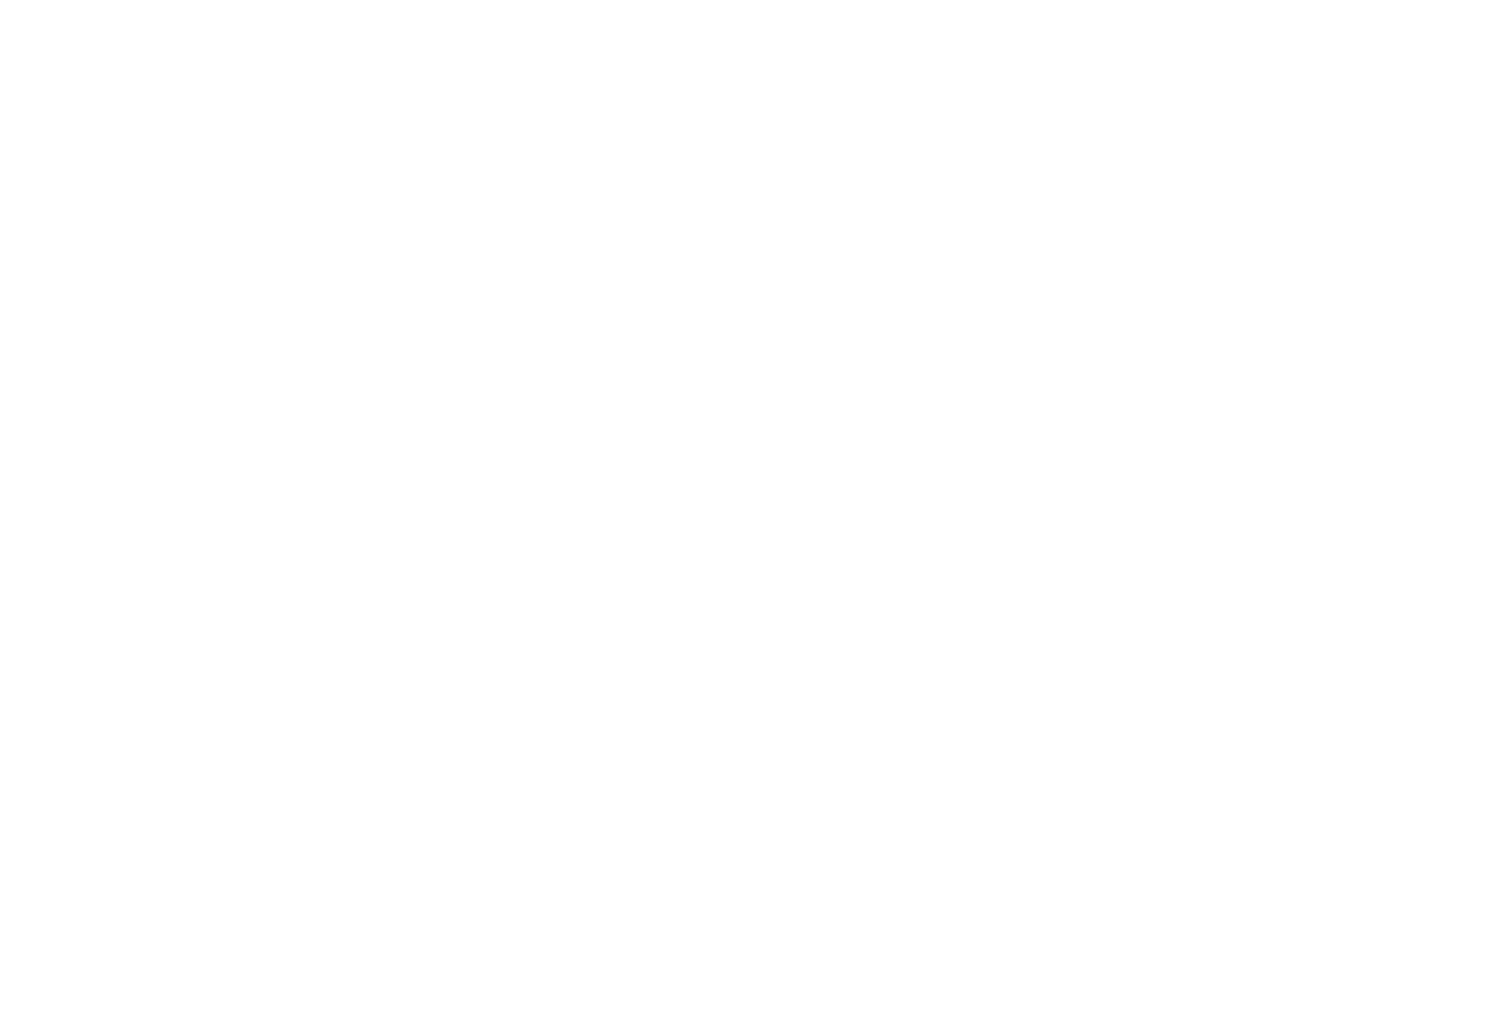 5559f3cf9d Maui Website Design   Marketing By Pueo Creations